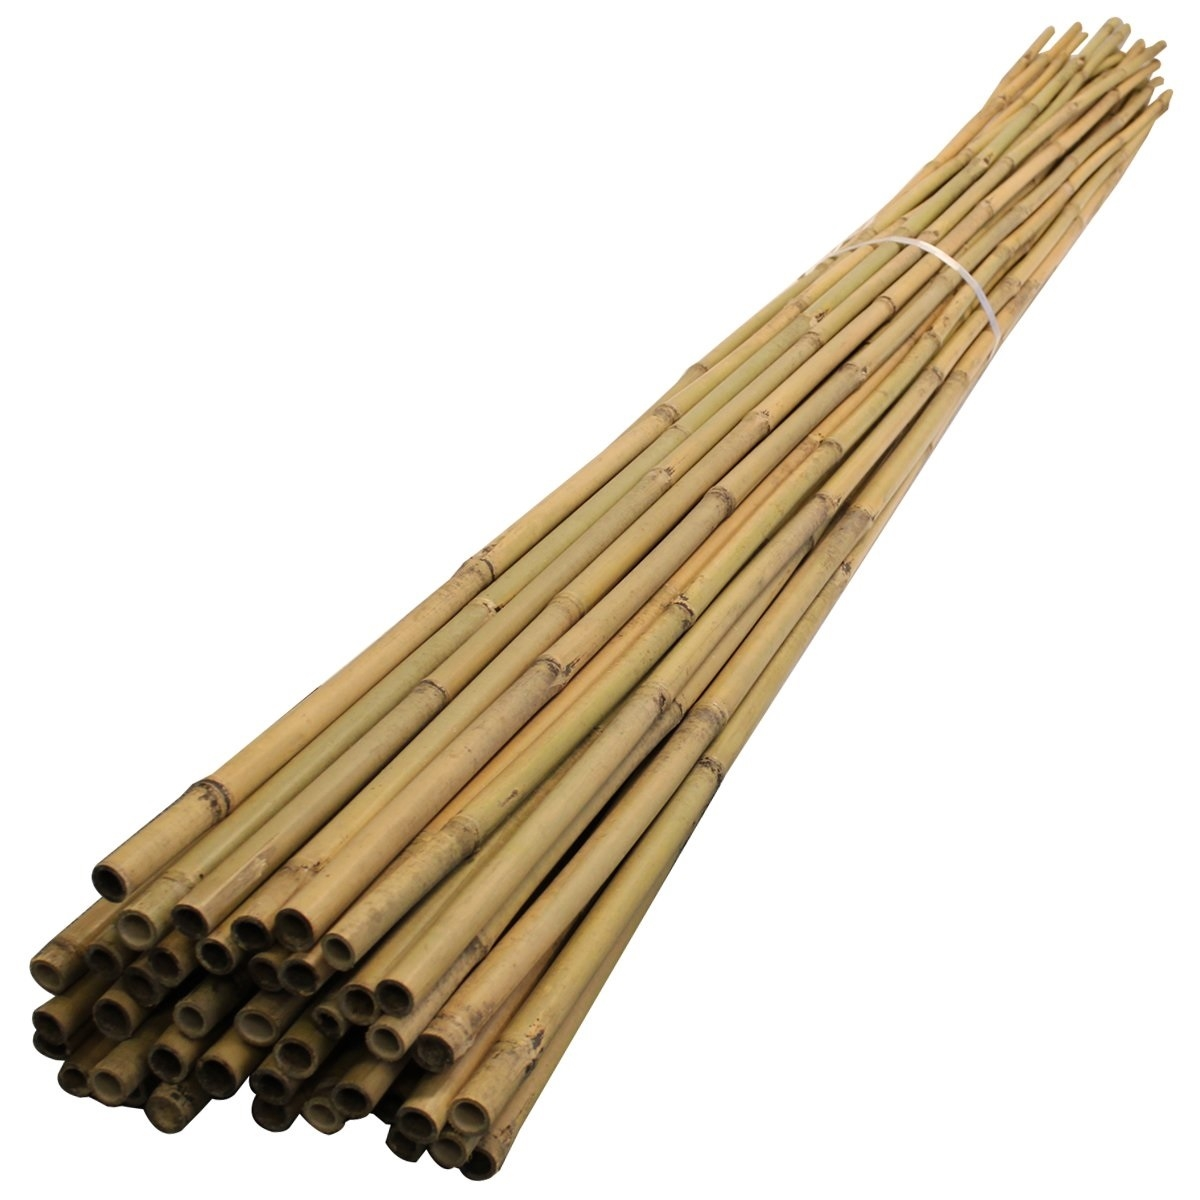 8ft Bamboo Canes - Pack of 10